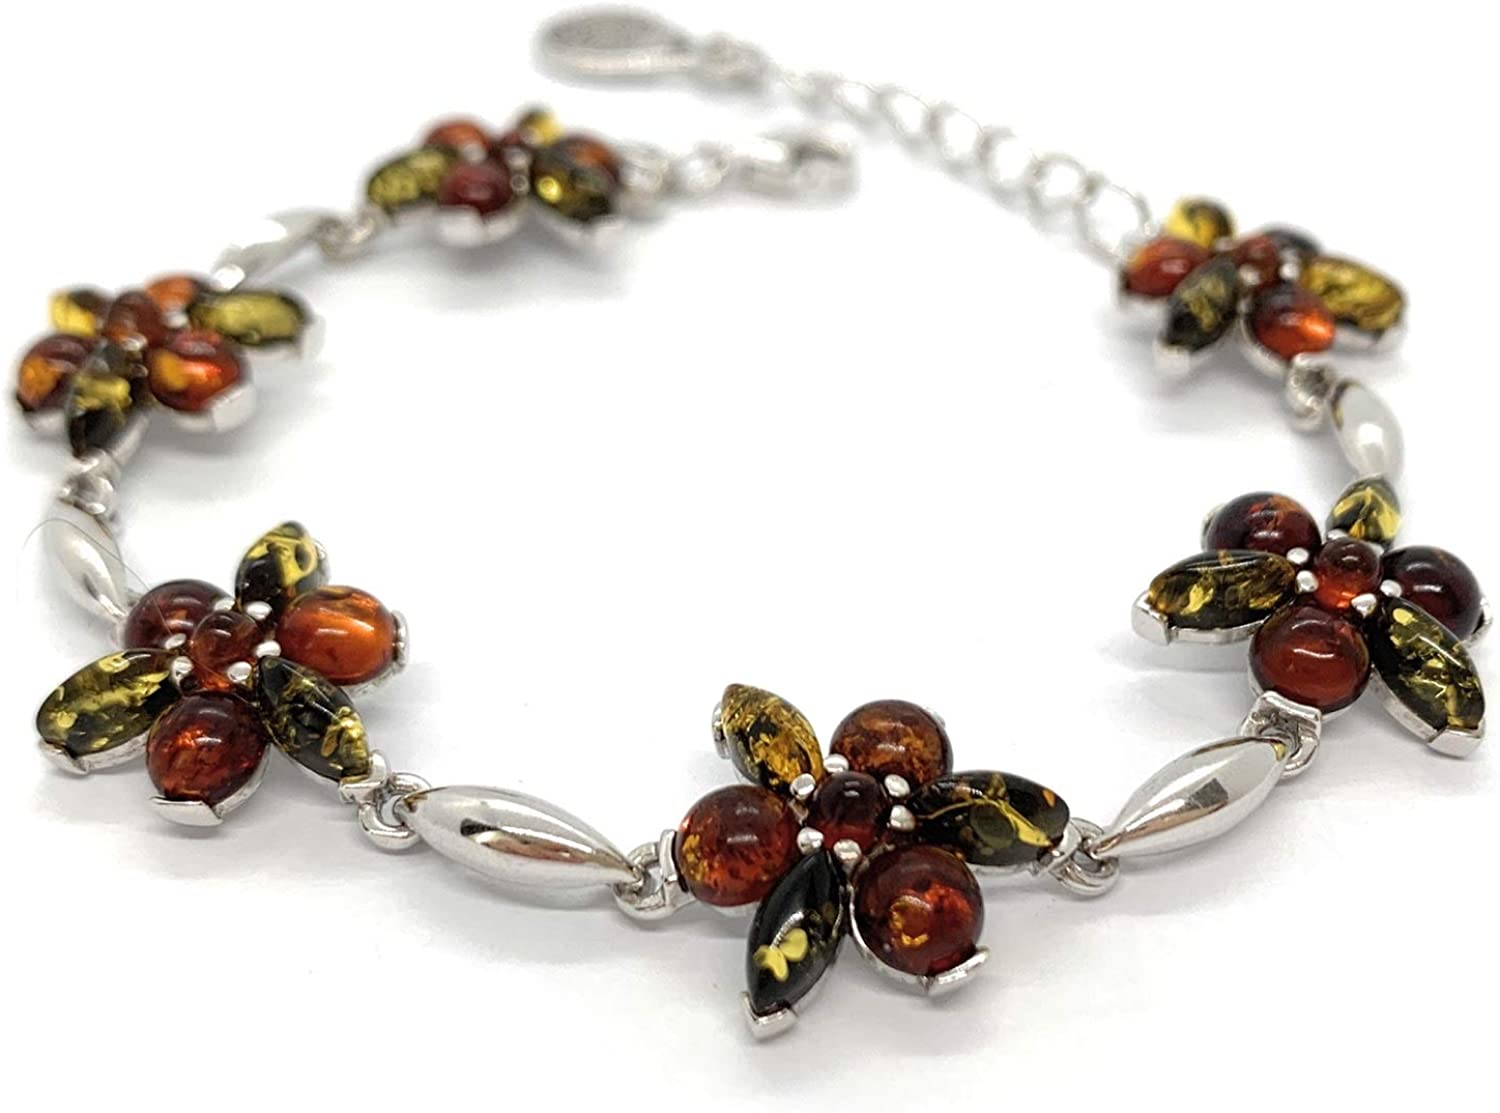 Statement Bracelet with Inserts from Amber. Desig Baltic Finally popular Max 49% OFF brand Genuine